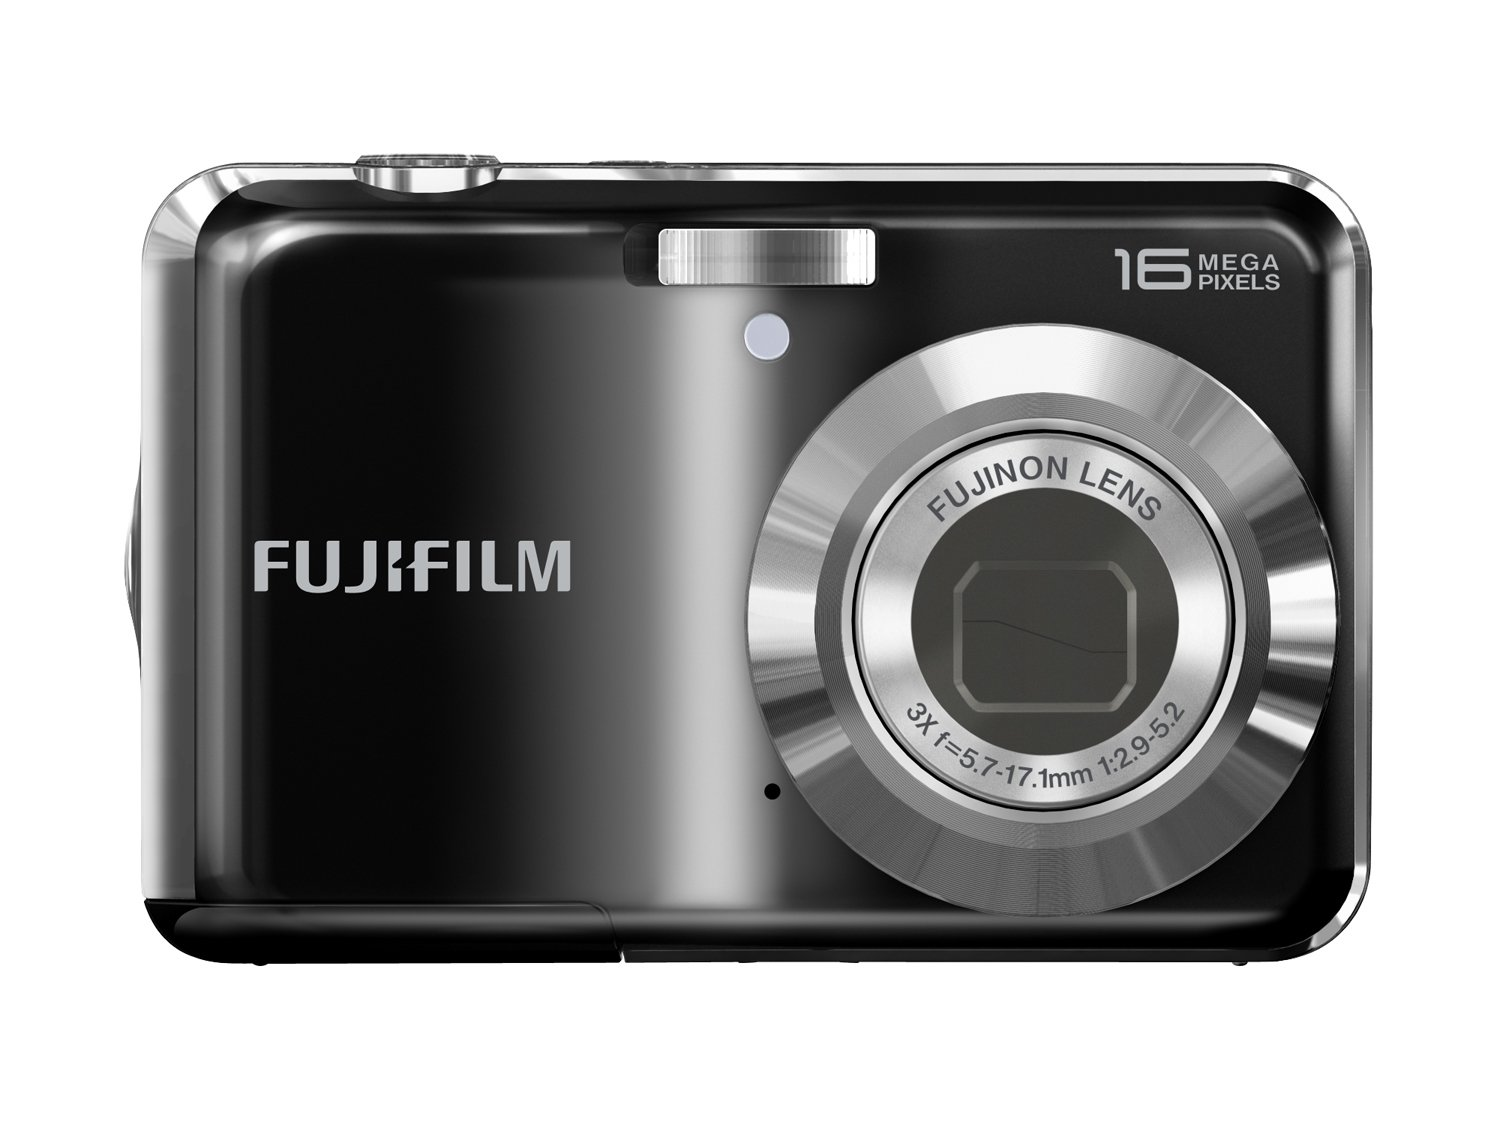 fujifilm finepix av250 digital camera black 2 7 inch amazon co uk rh amazon co uk Fujifilm FinePix Fujifilm FinePix XP10 Waterproof Digital Camera